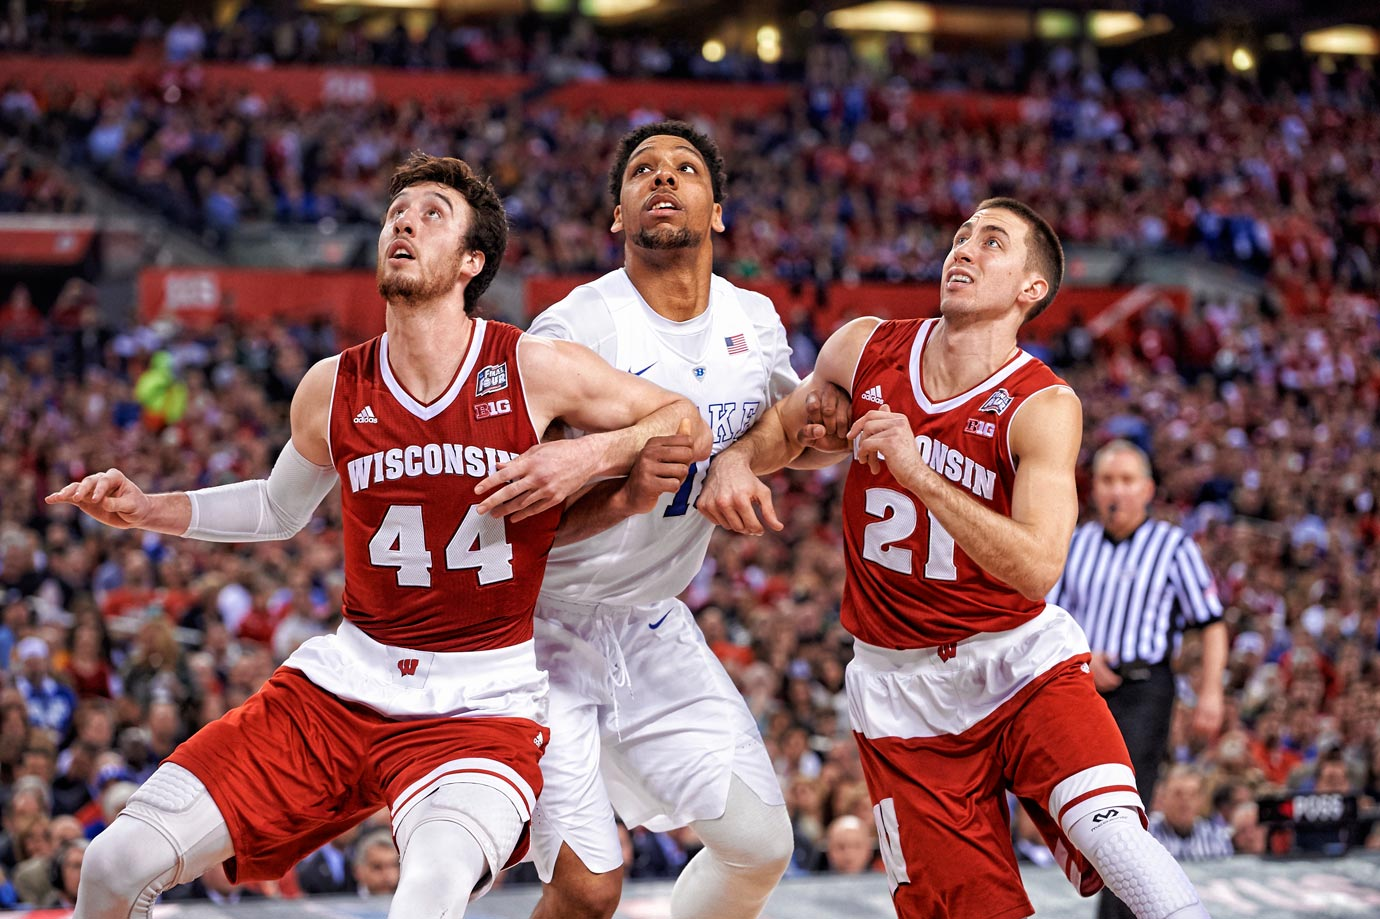 Wisconsin contained Duke center Jahlil Okafor for most of Monday night, holding the freshman to 10 points and three rebounds.